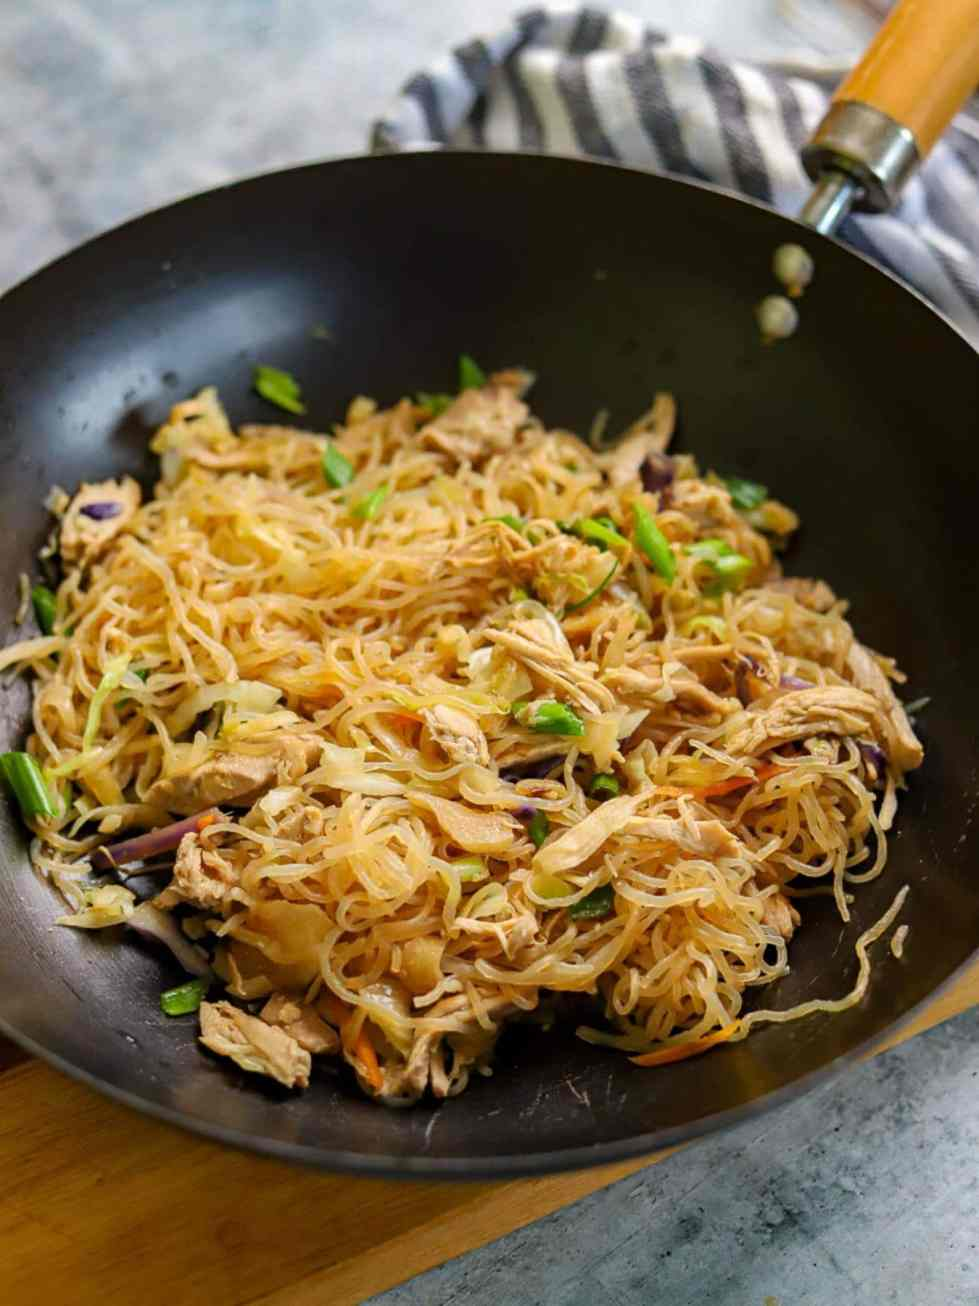 Asian noodles and vegetables cooked together in a wok